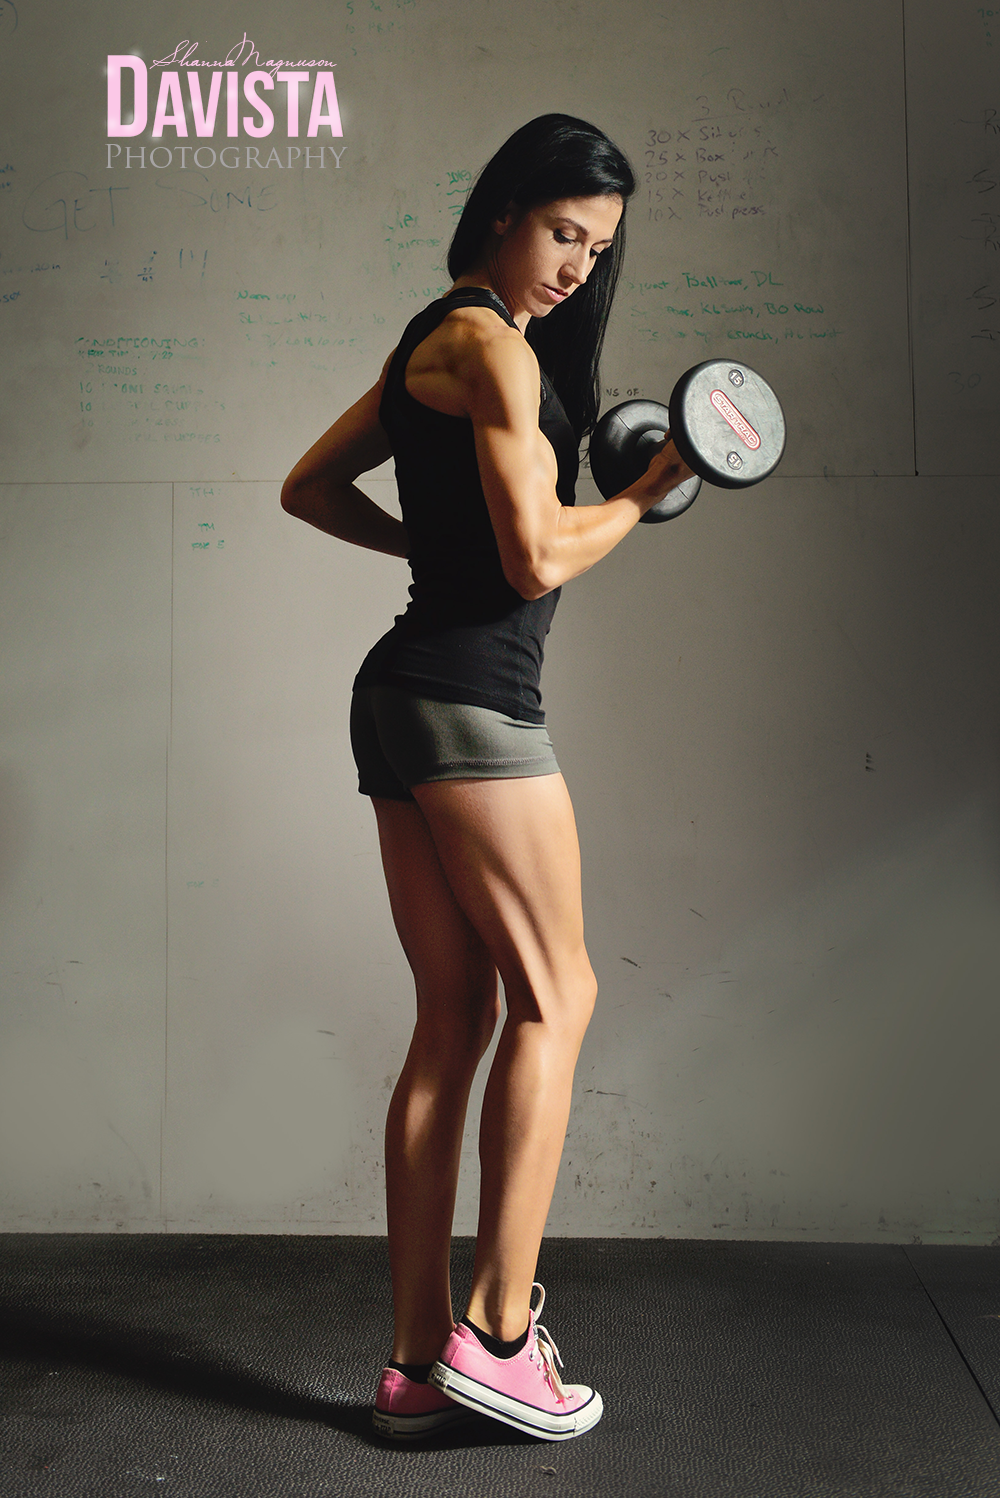 el-paso-texas-fitness-womens-poses-weights-photographer